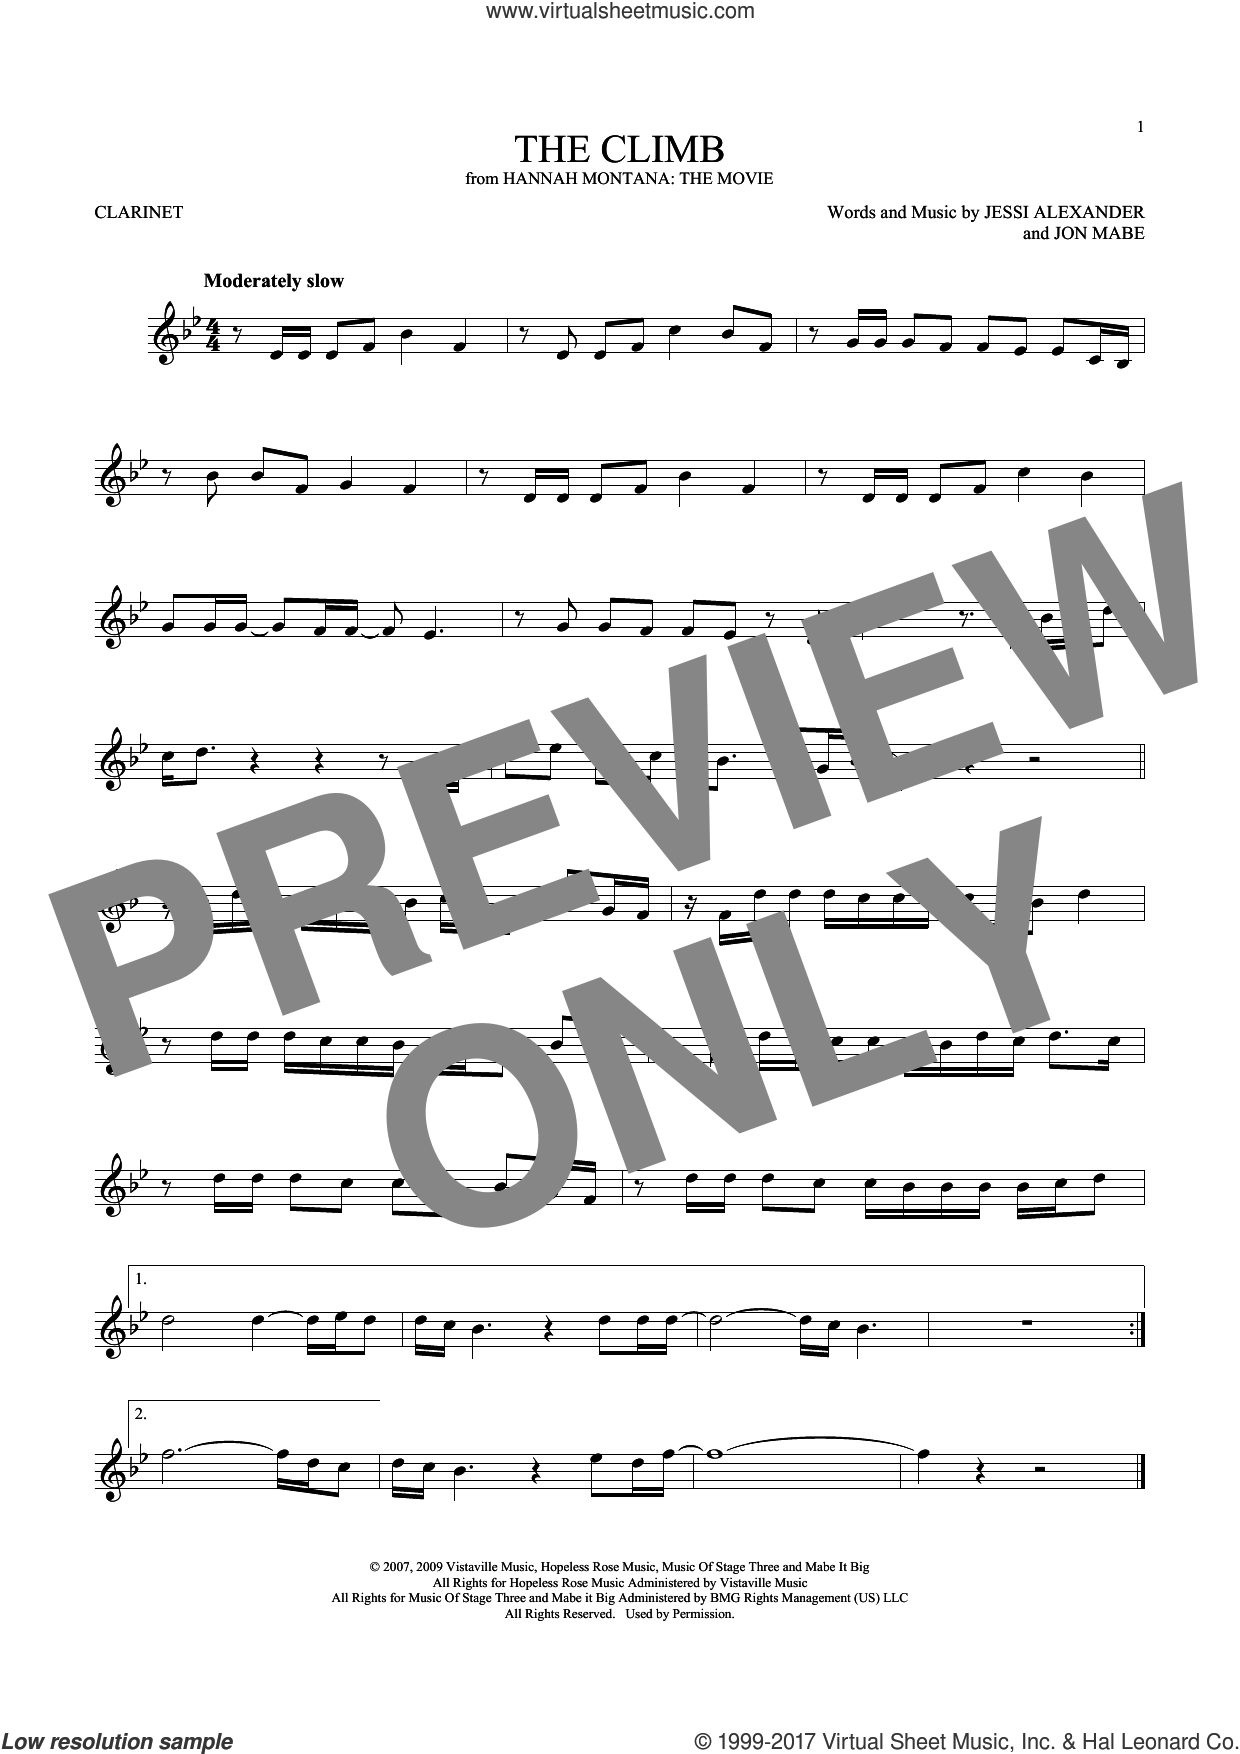 The Climb sheet music for clarinet solo by Miley Cyrus, Jessi Alexander and Jon Mabe, intermediate skill level